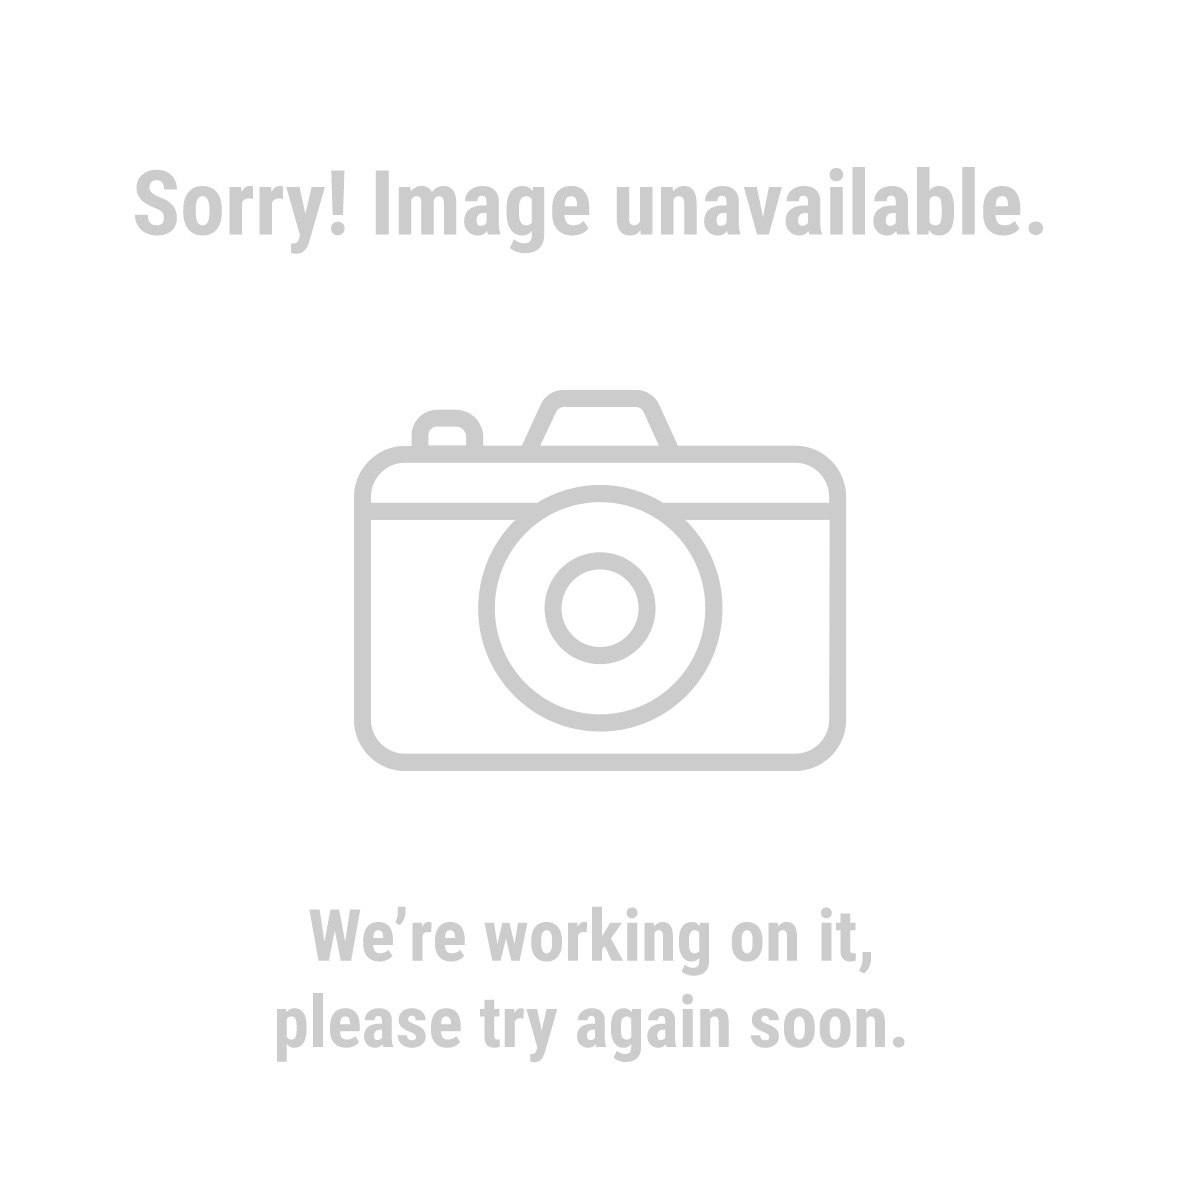 Truck Bed Extender Hitch Harbor Freight